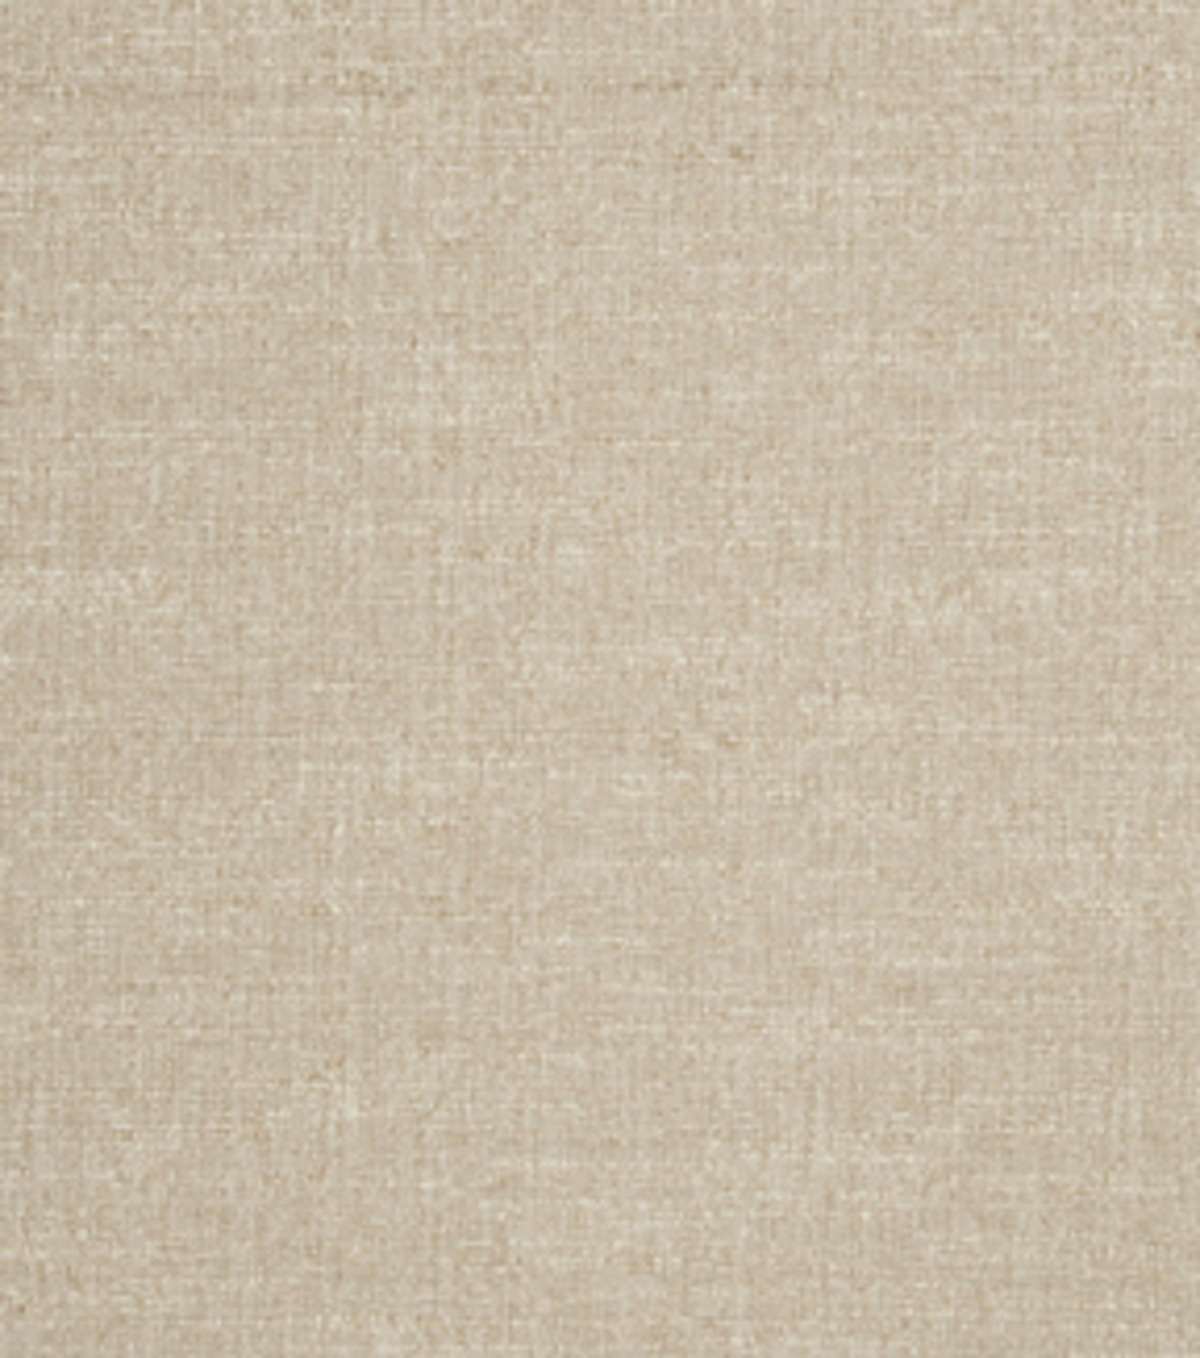 Home Decor 8\u0022x8\u0022 Fabric Swatch-Signature Series Texture Chinchilla